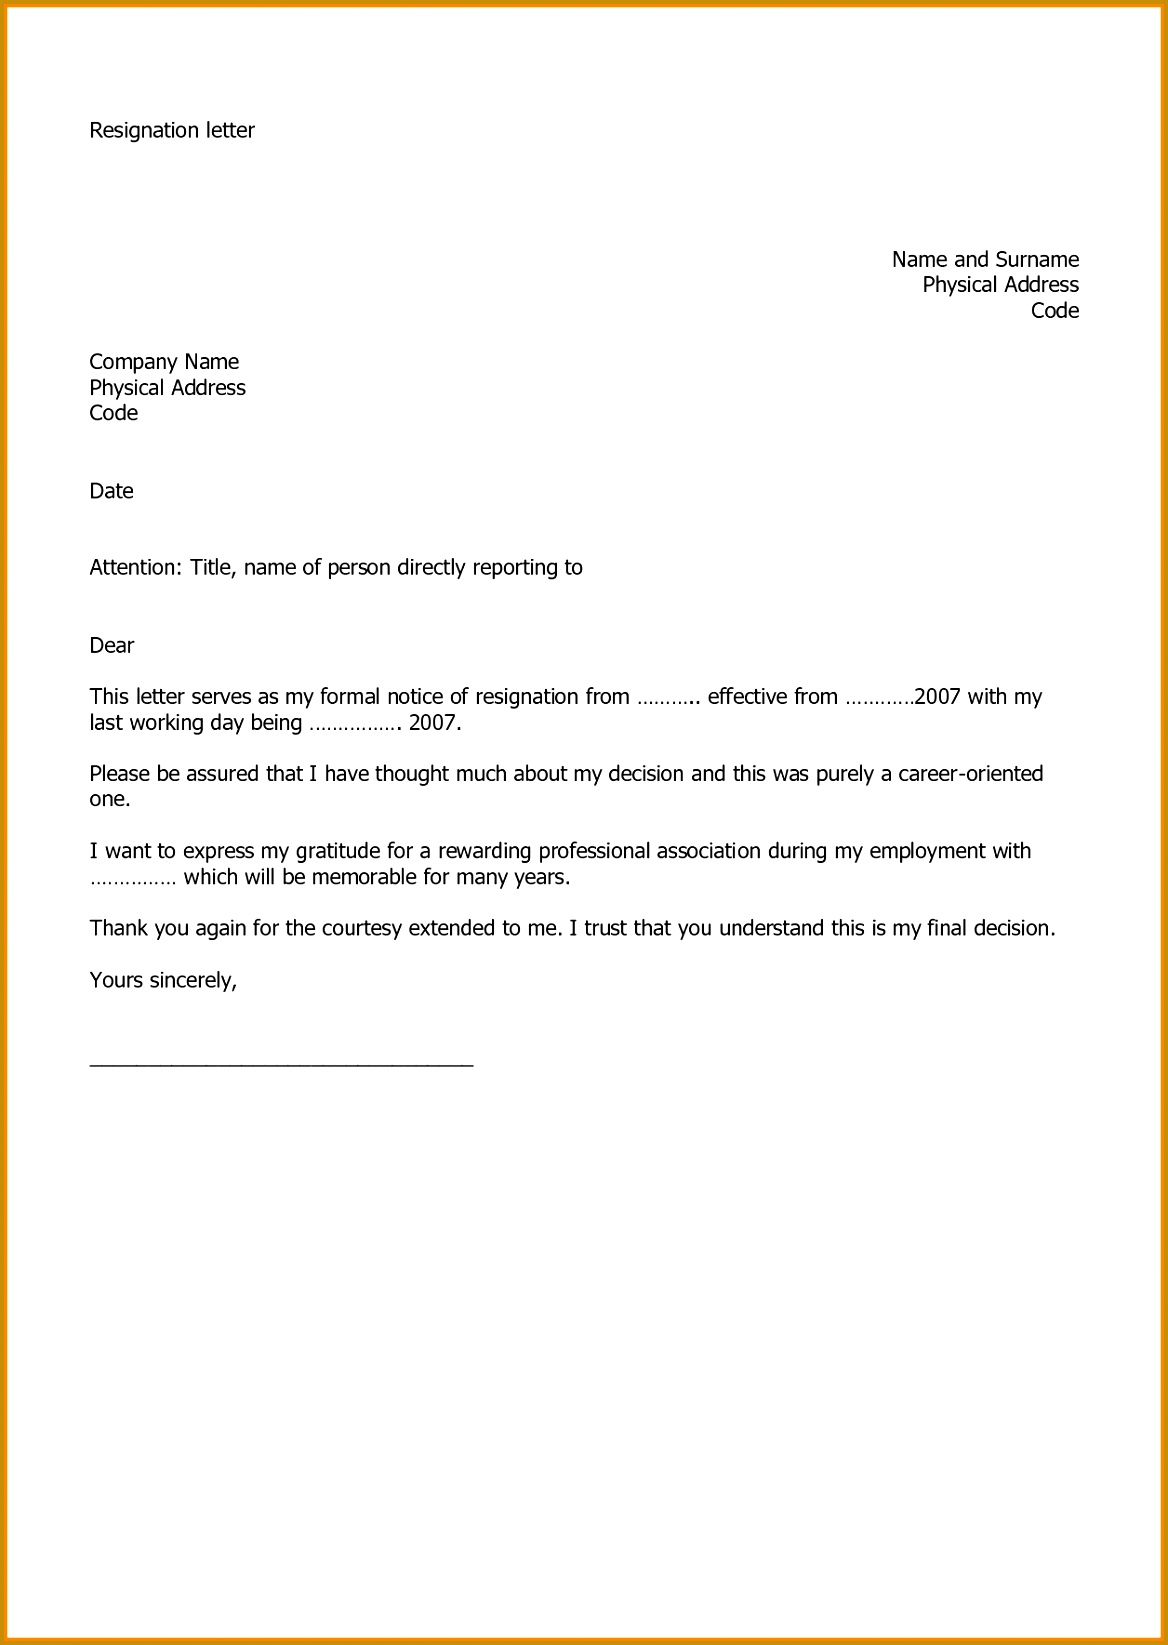 20 Two Weeks Resignation Letter Template 16451168